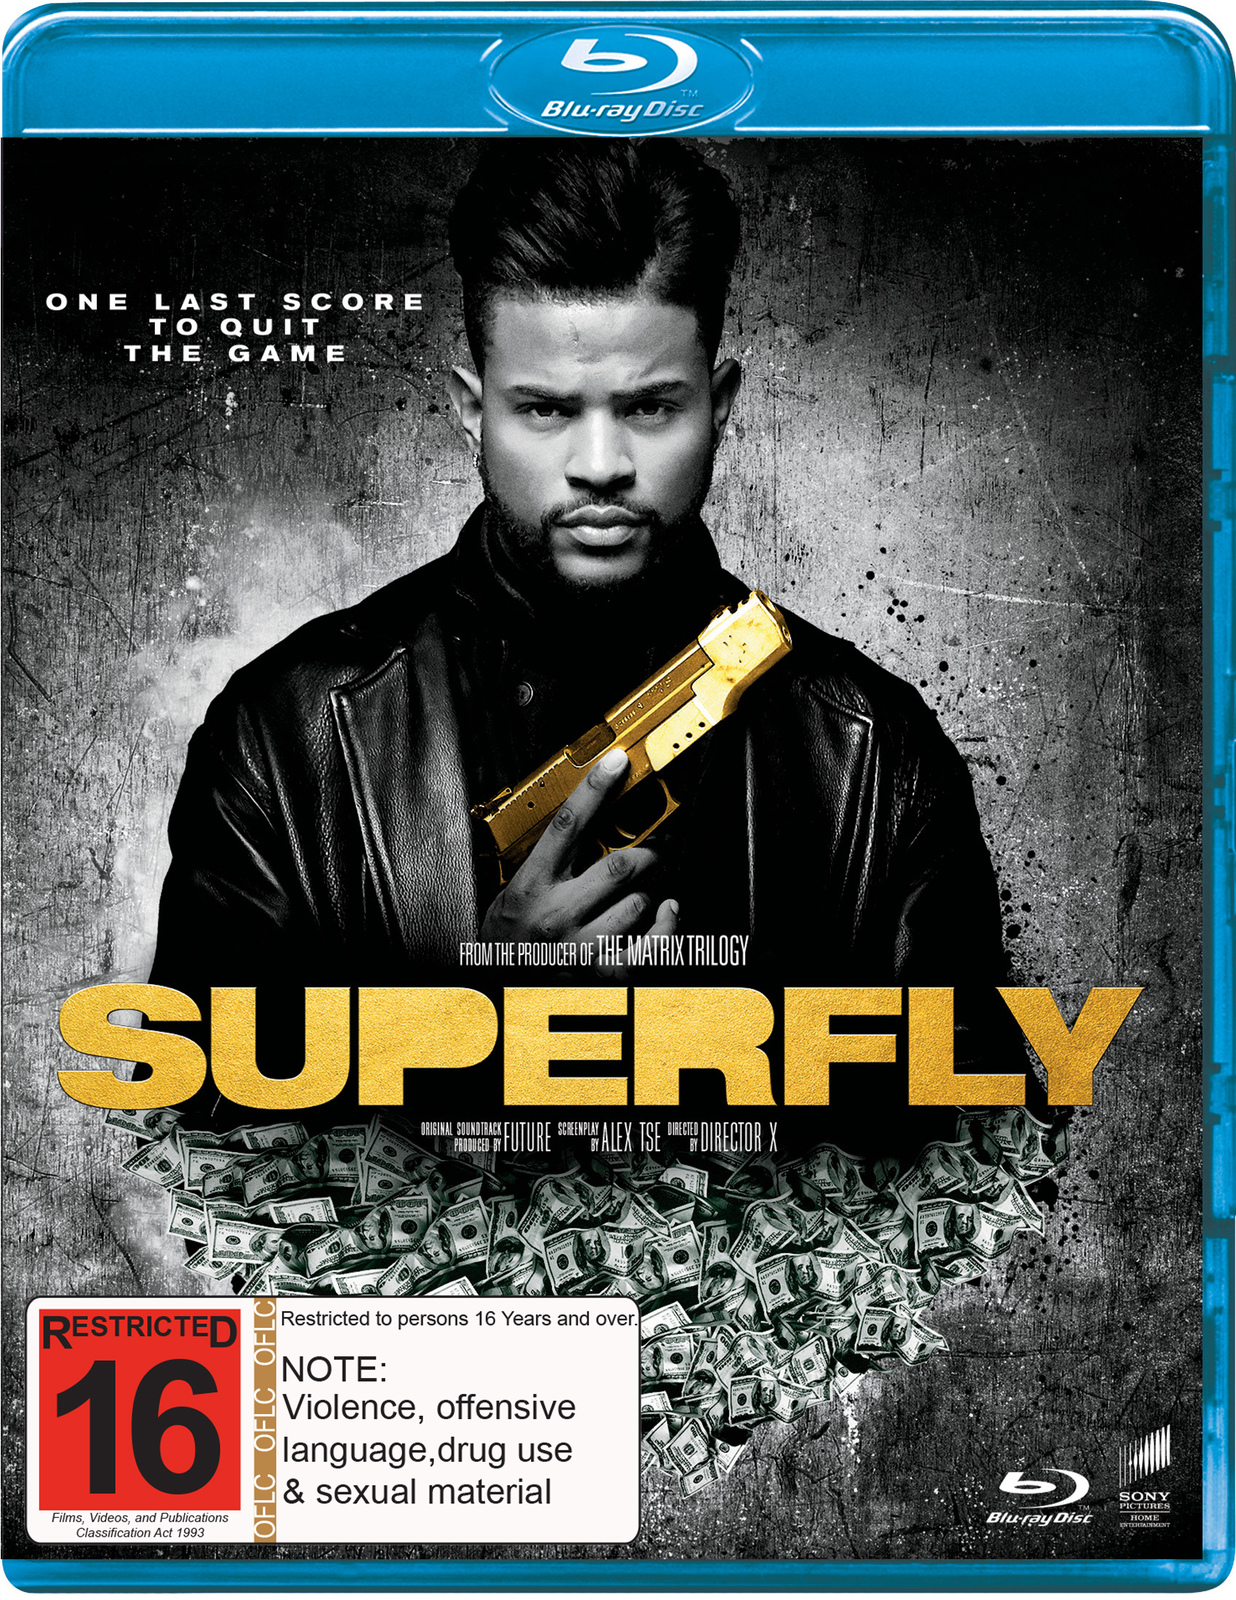 Superfly image